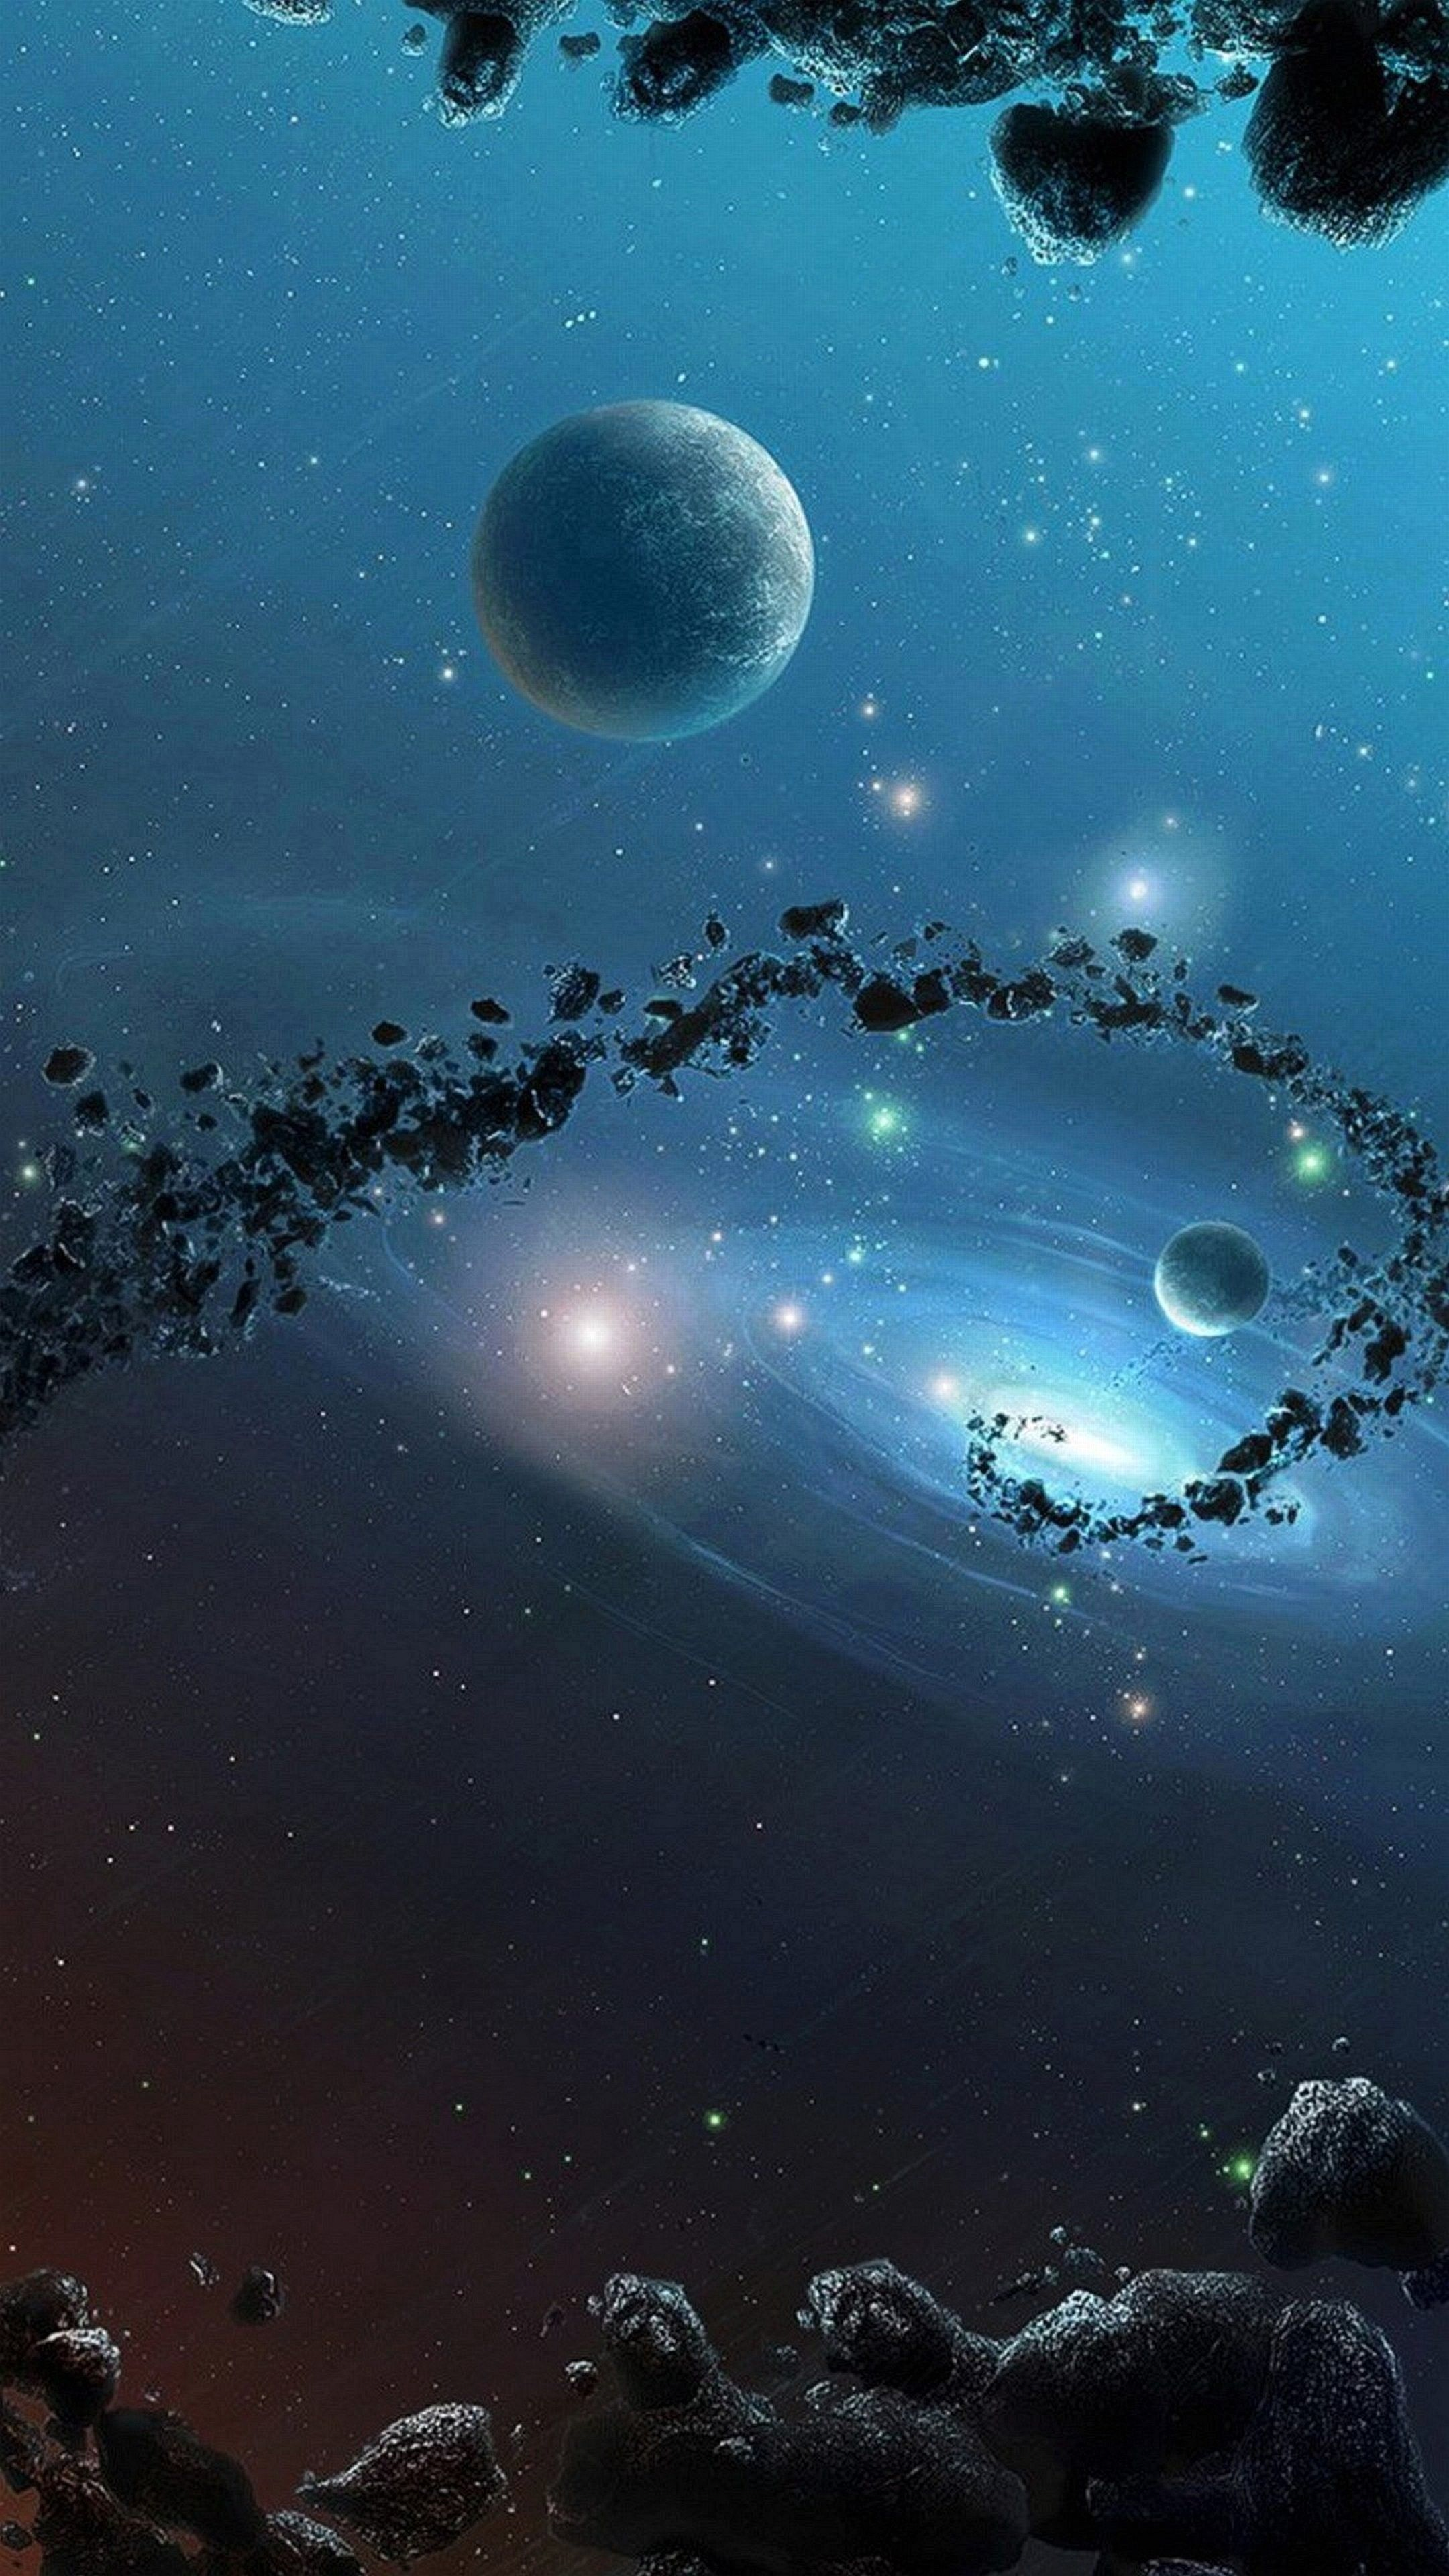 Sky Water Blue Astronomical Object Atmosphere Celestial Event In 2020 Space Art Space And Astronomy Astronomy